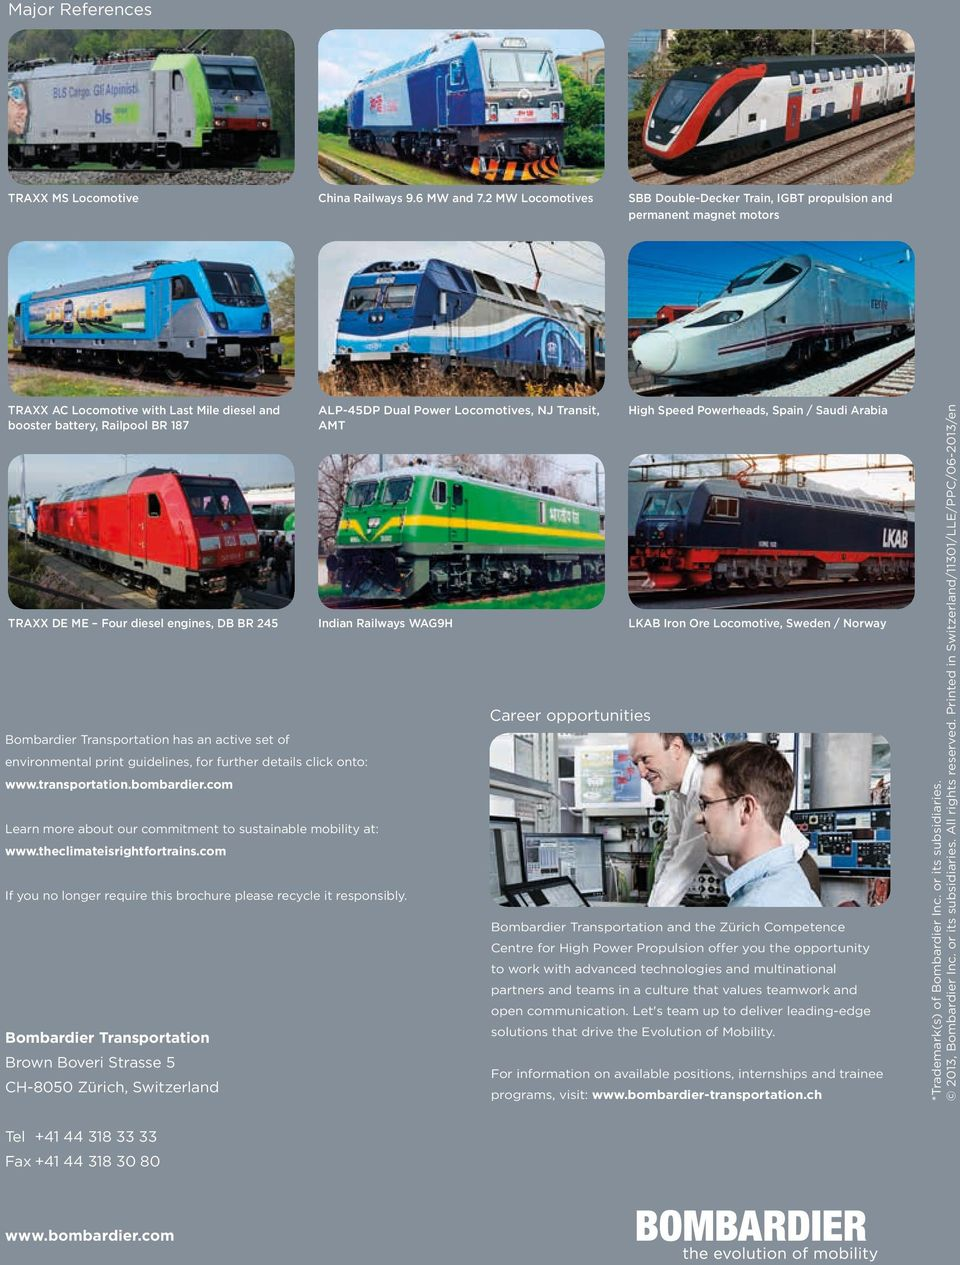 DB BR 245 Bombardier Transportation has an active set of environmental print guidelines, for further details click onto: www.transportation.bombardier.